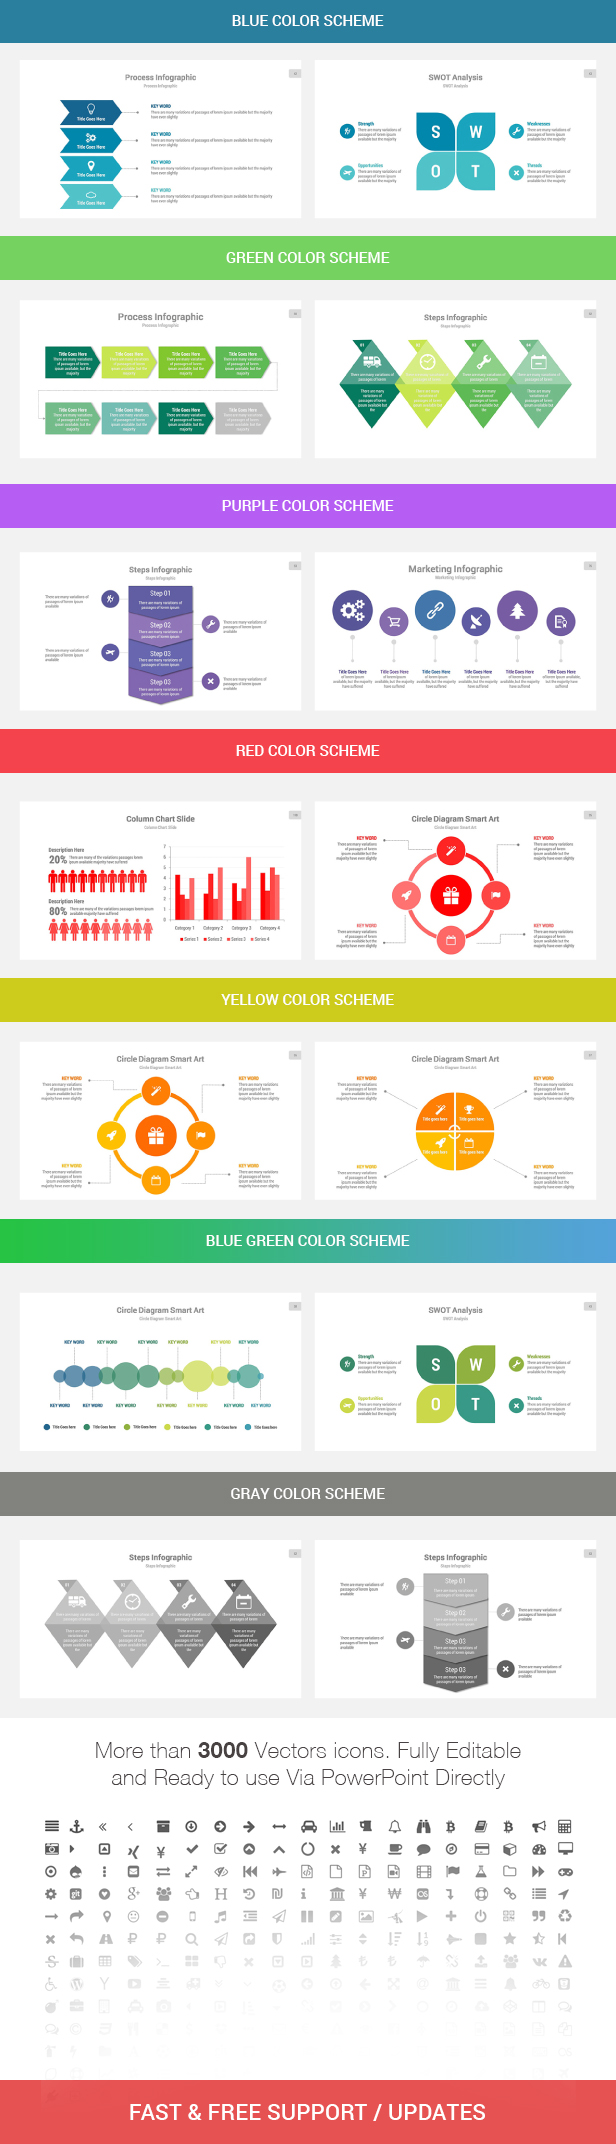 BizMax PowerPoint Presentation Template - 4